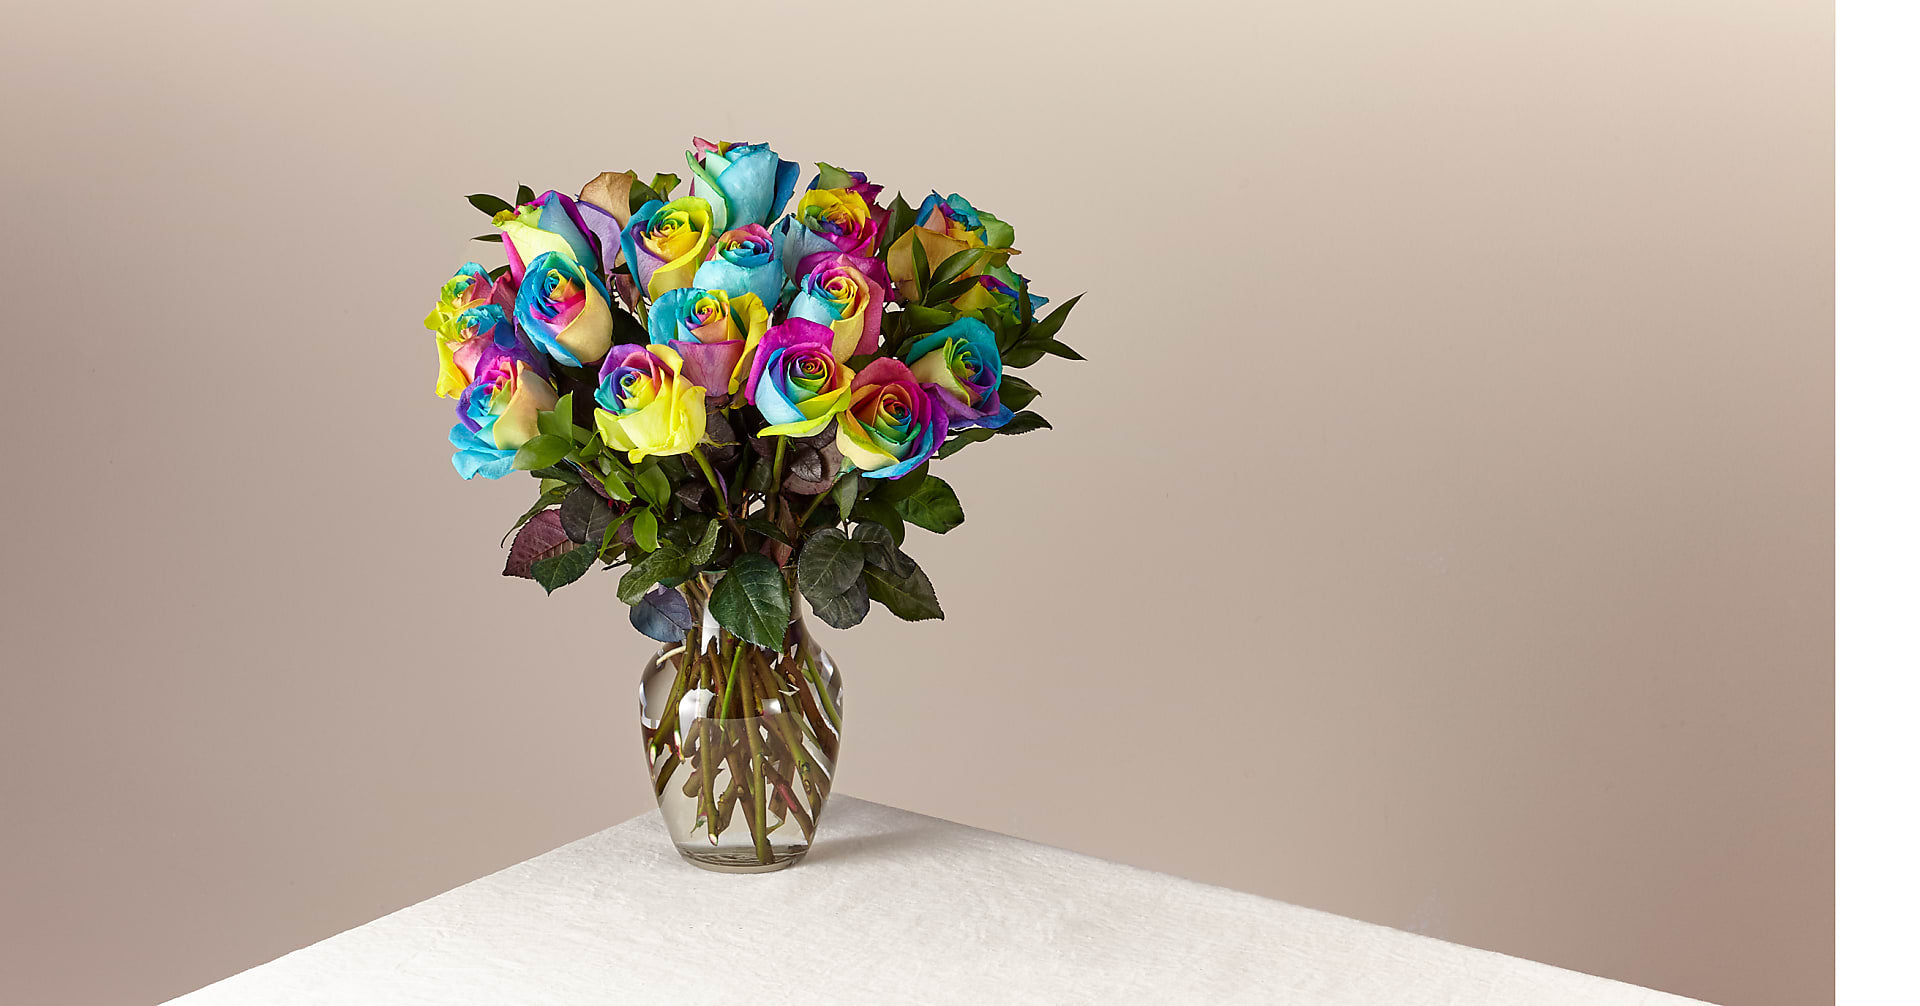 Time to Celebrate Rainbow Rose Bouquet - 24 Stems with Vase - Image 1 Of 4